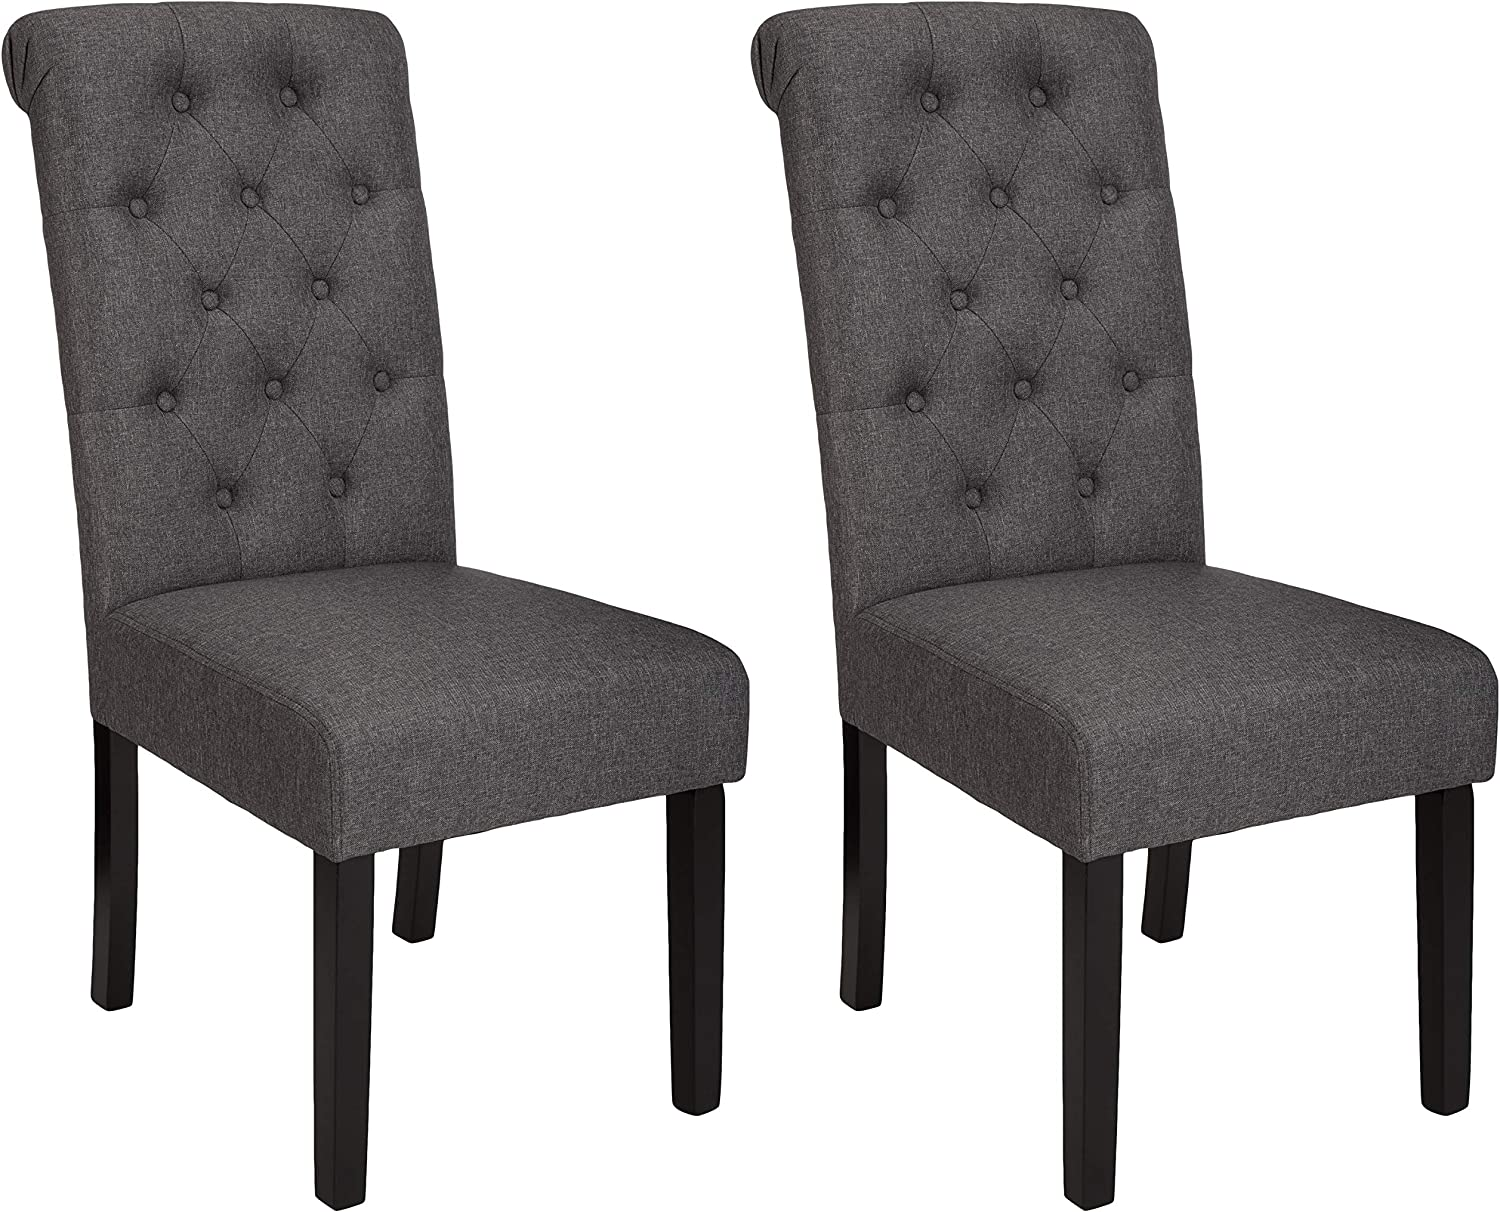 AmazonBasics Classic Fabric Tufted Dining Chair with Wooden Legs - Set of 2, Charcoal